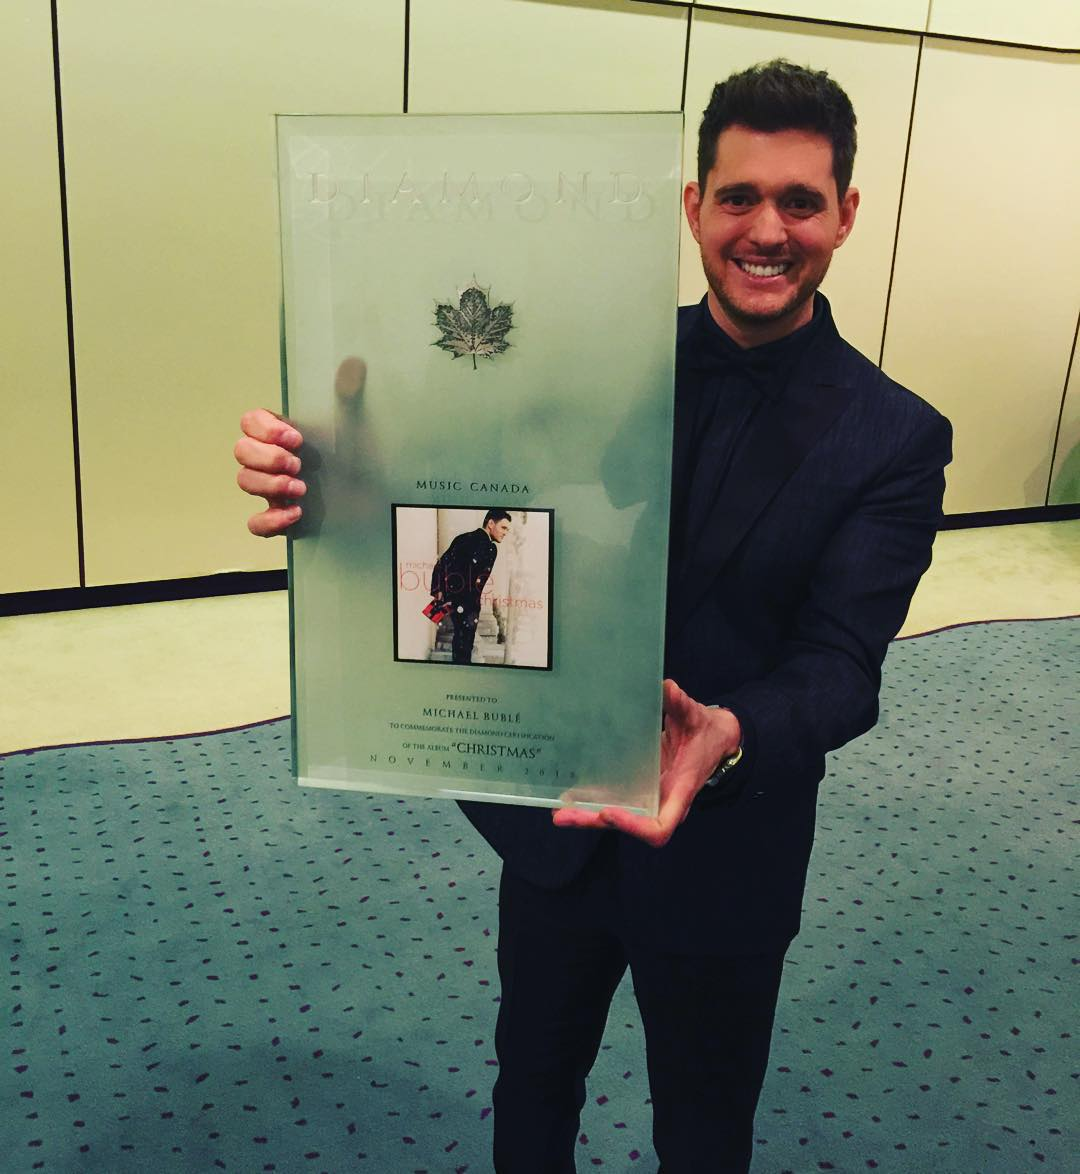 Michael Bublé Instagram: thanks to  my family from Warner Canada for presenting me with this incredible d...